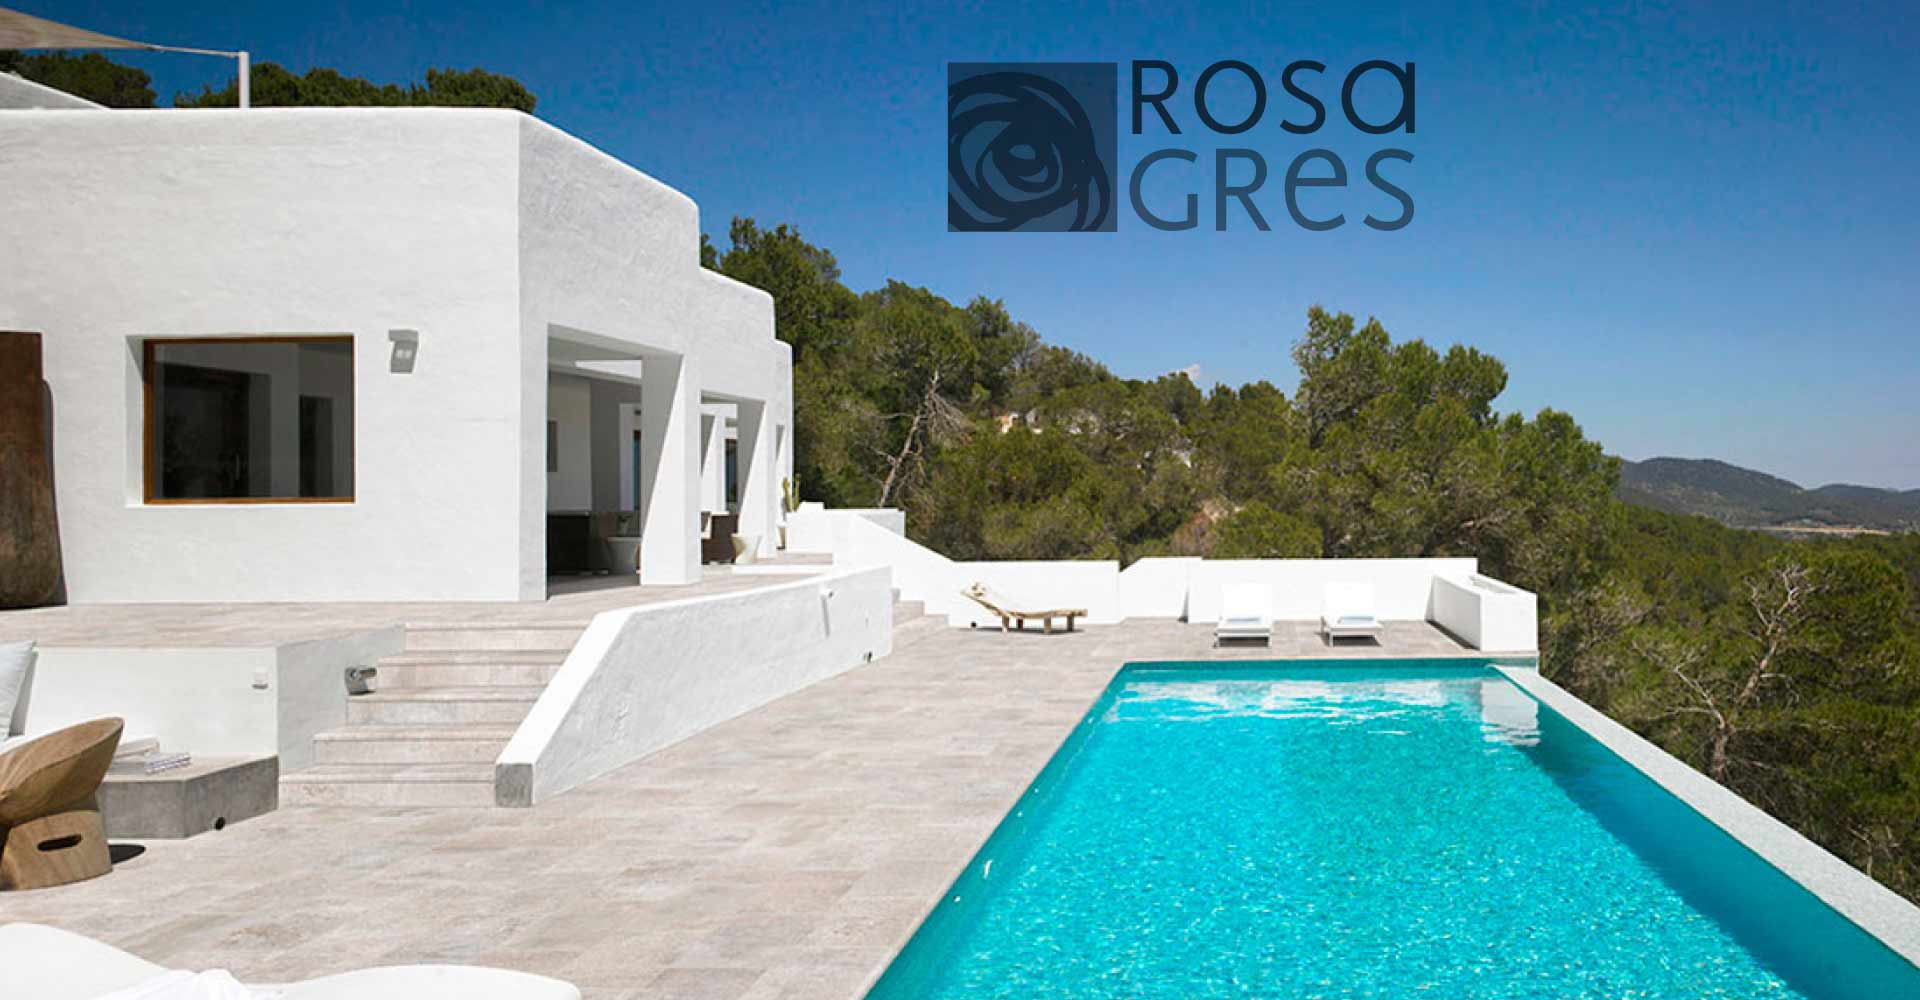 Rosa gres garc a reguera ii materiales de construcci n for Materiales de construccion piscinas